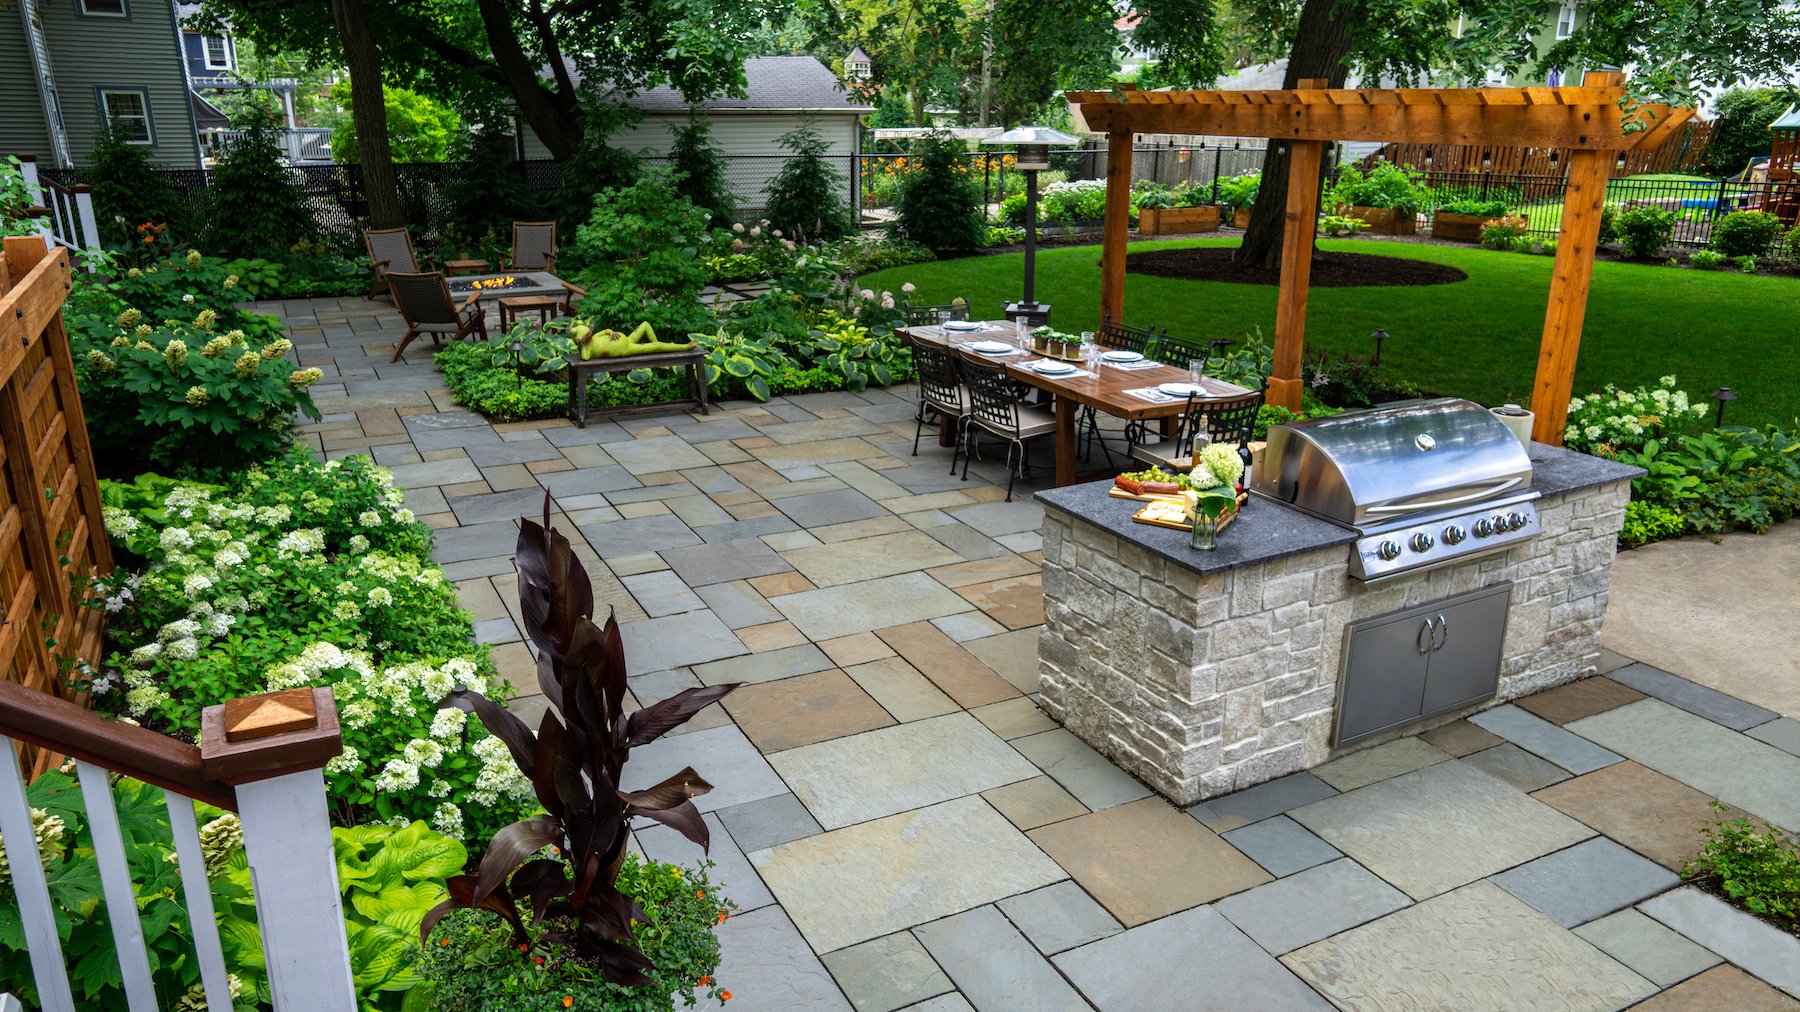 3 Common Paver Patio Problems and Solutions